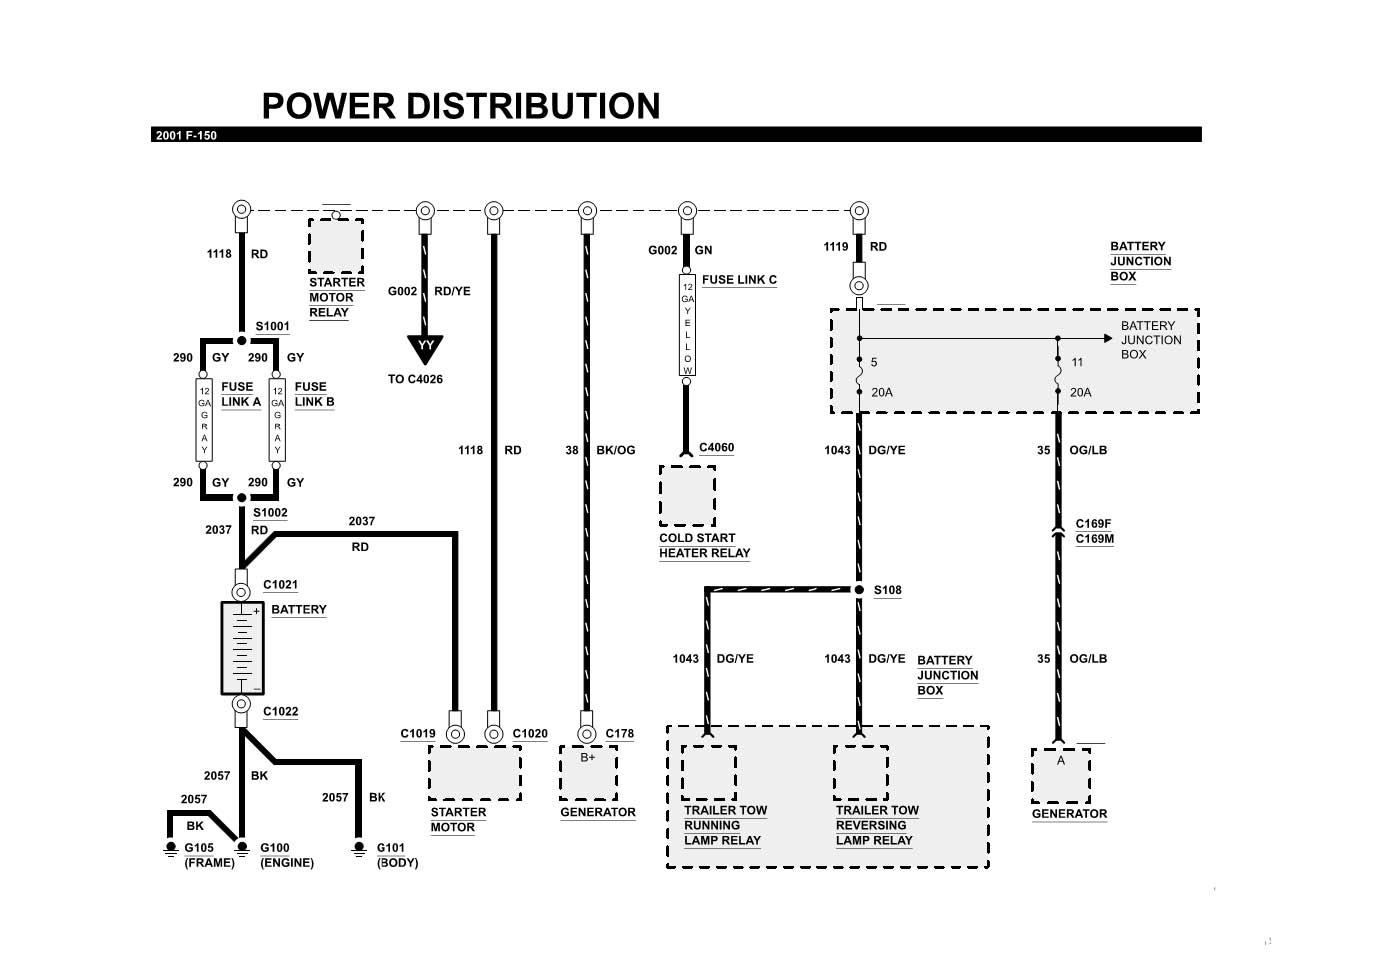 1998 Chevy S10 Electrical Diagram Not Lossing Wiring Ford Expedition Starter 99 04 Mustang Pats 33 Turn Signal